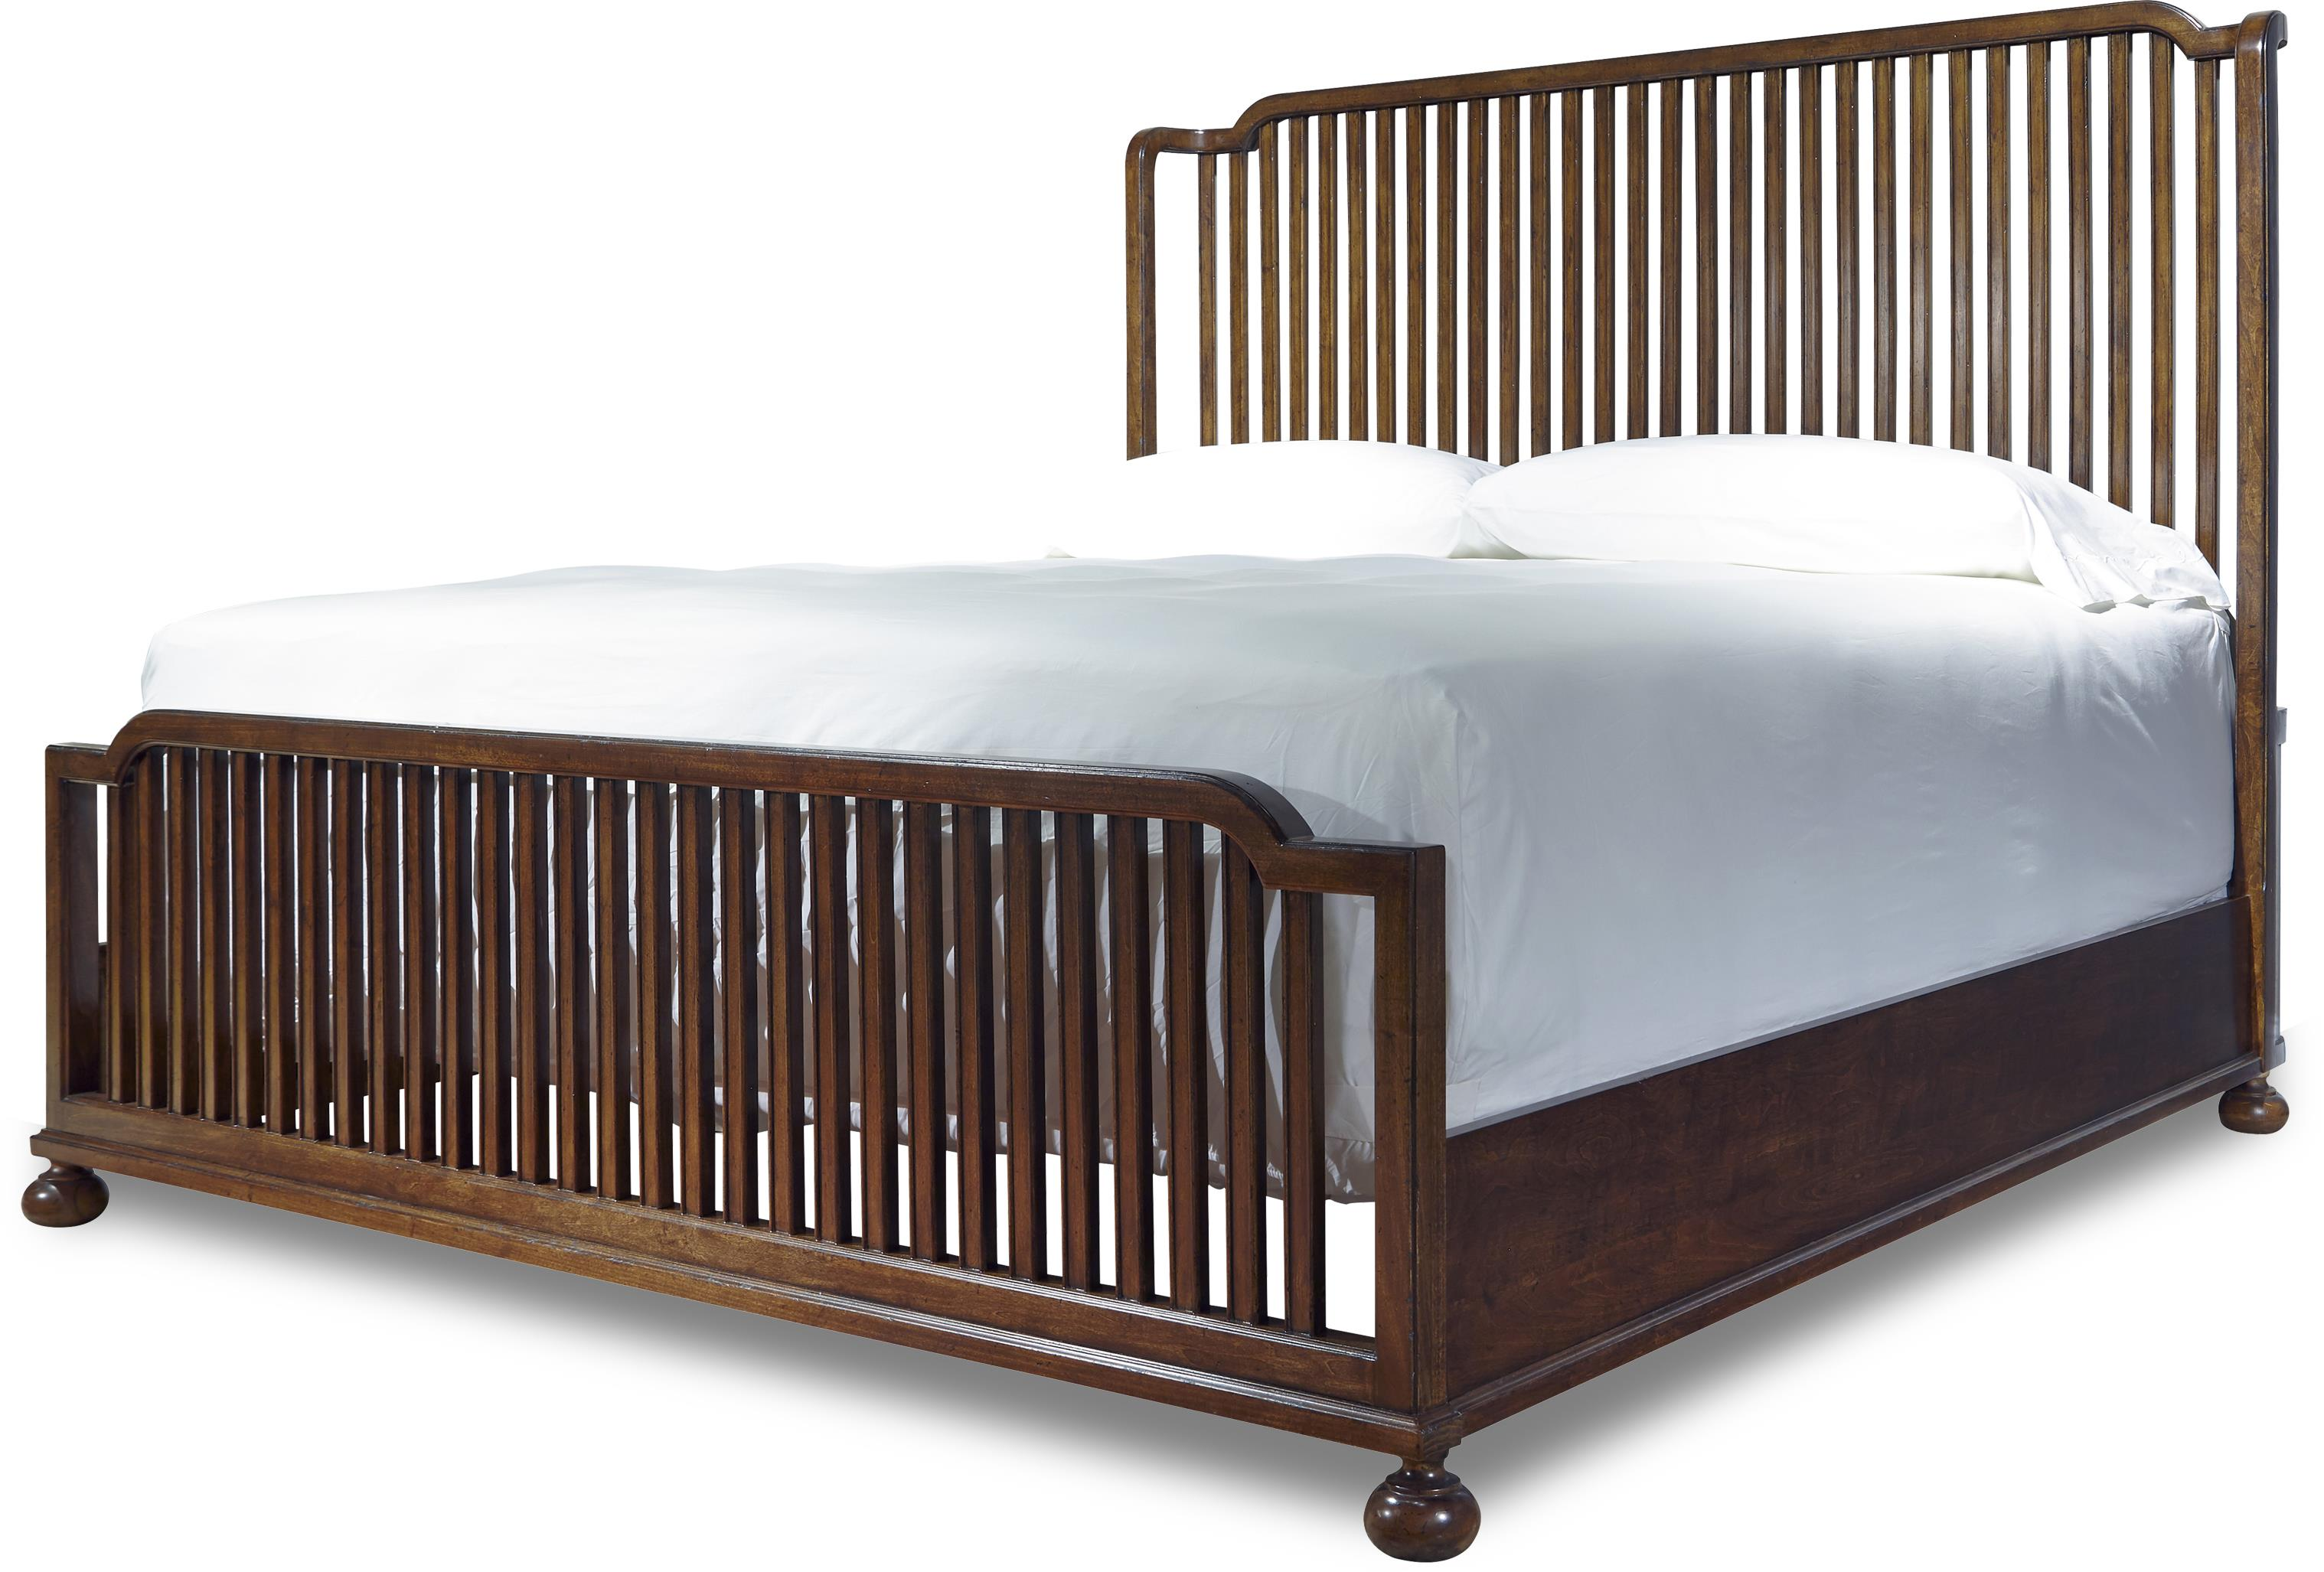 Paula Deen by Universal Dogwood The Tybee Island King Bed - Item Number: 596260B